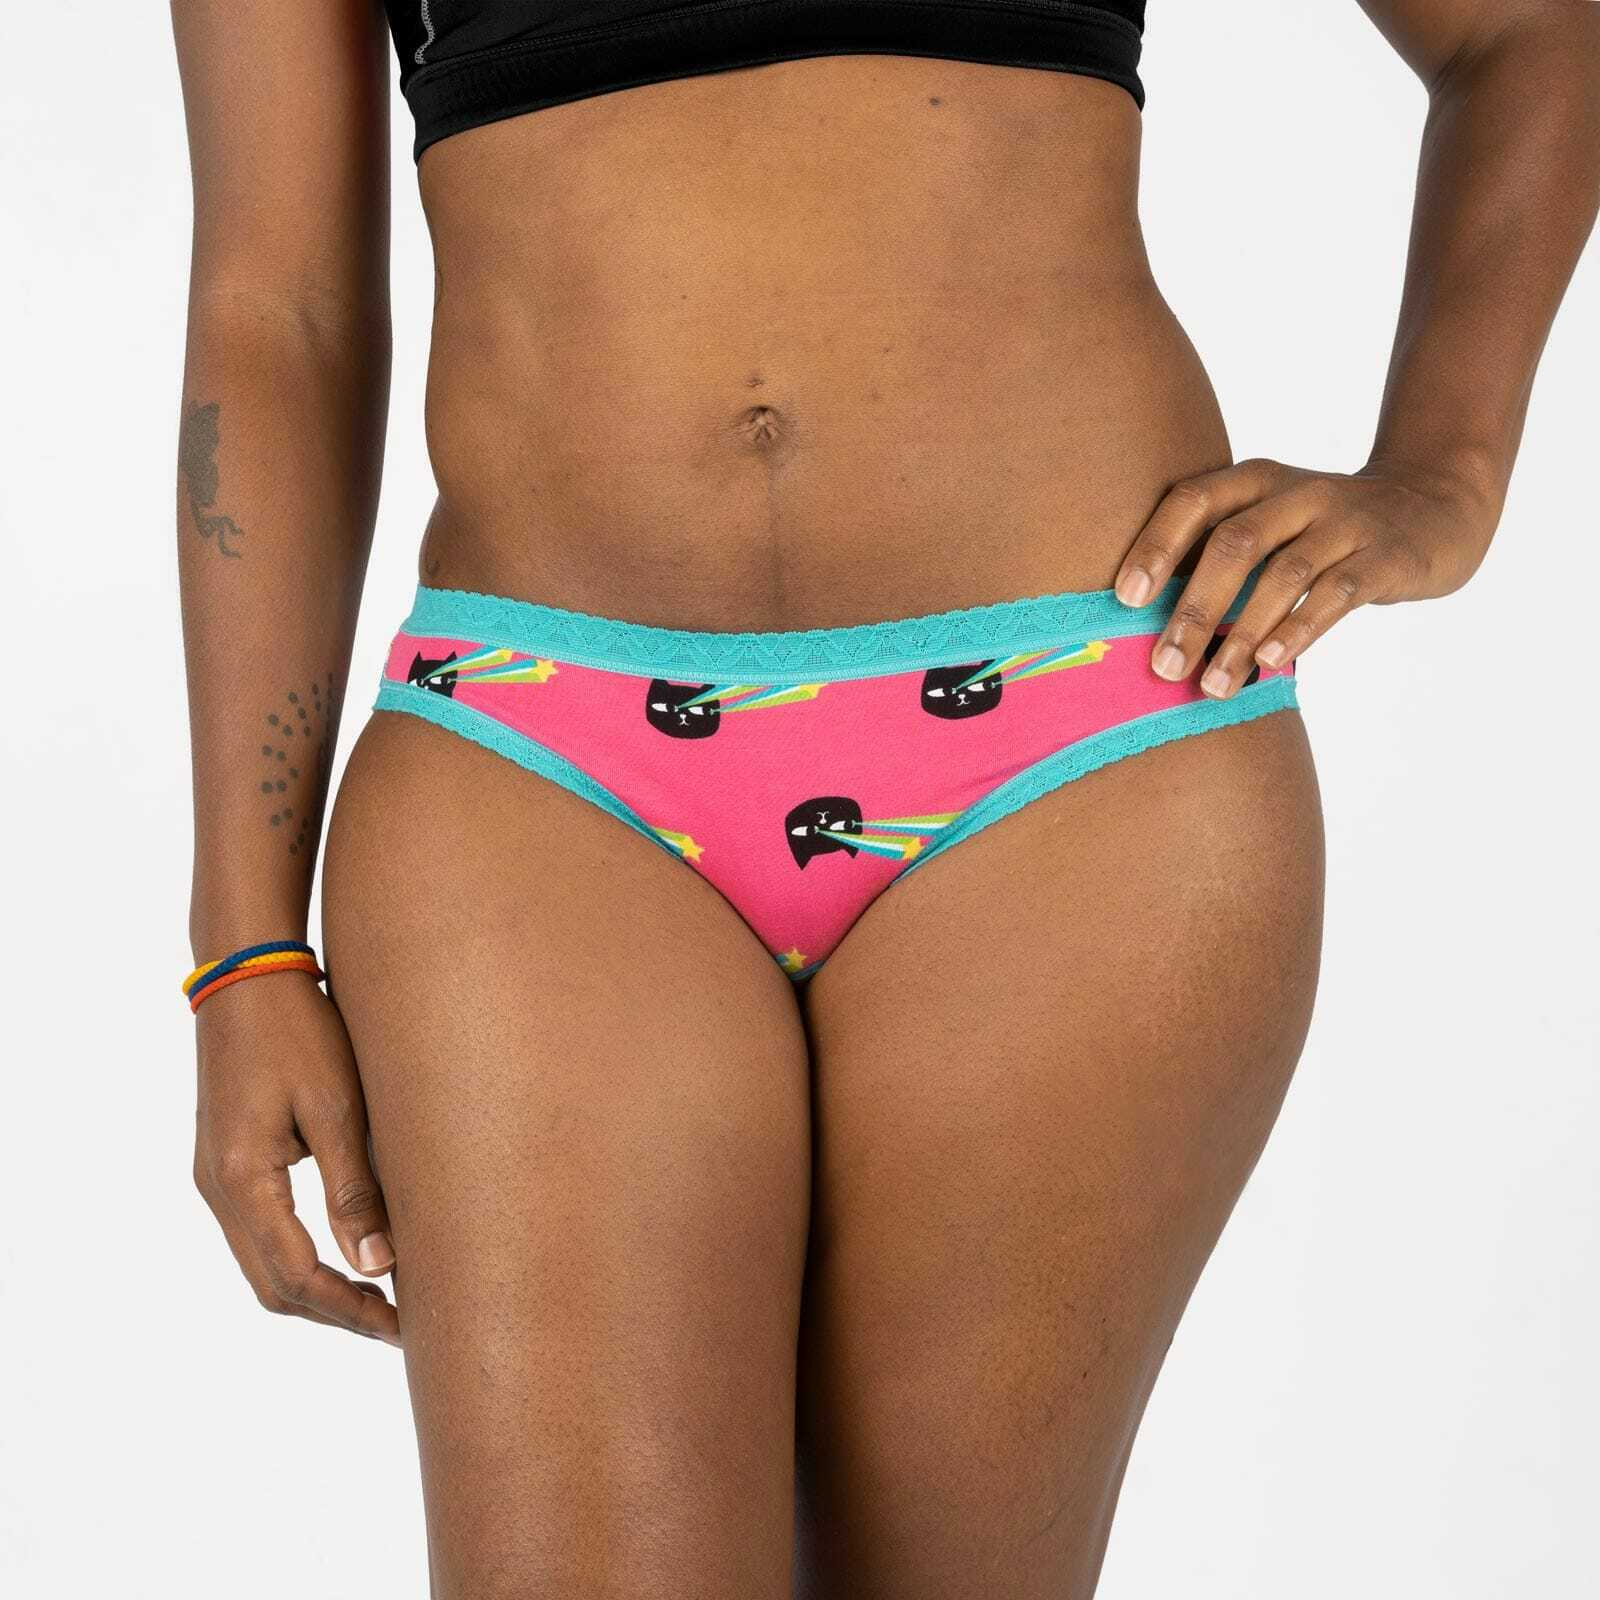 model wearing Pew Pew - Funny Laser Cat Bikini Cut Pink - Women's Sizes XS-XL